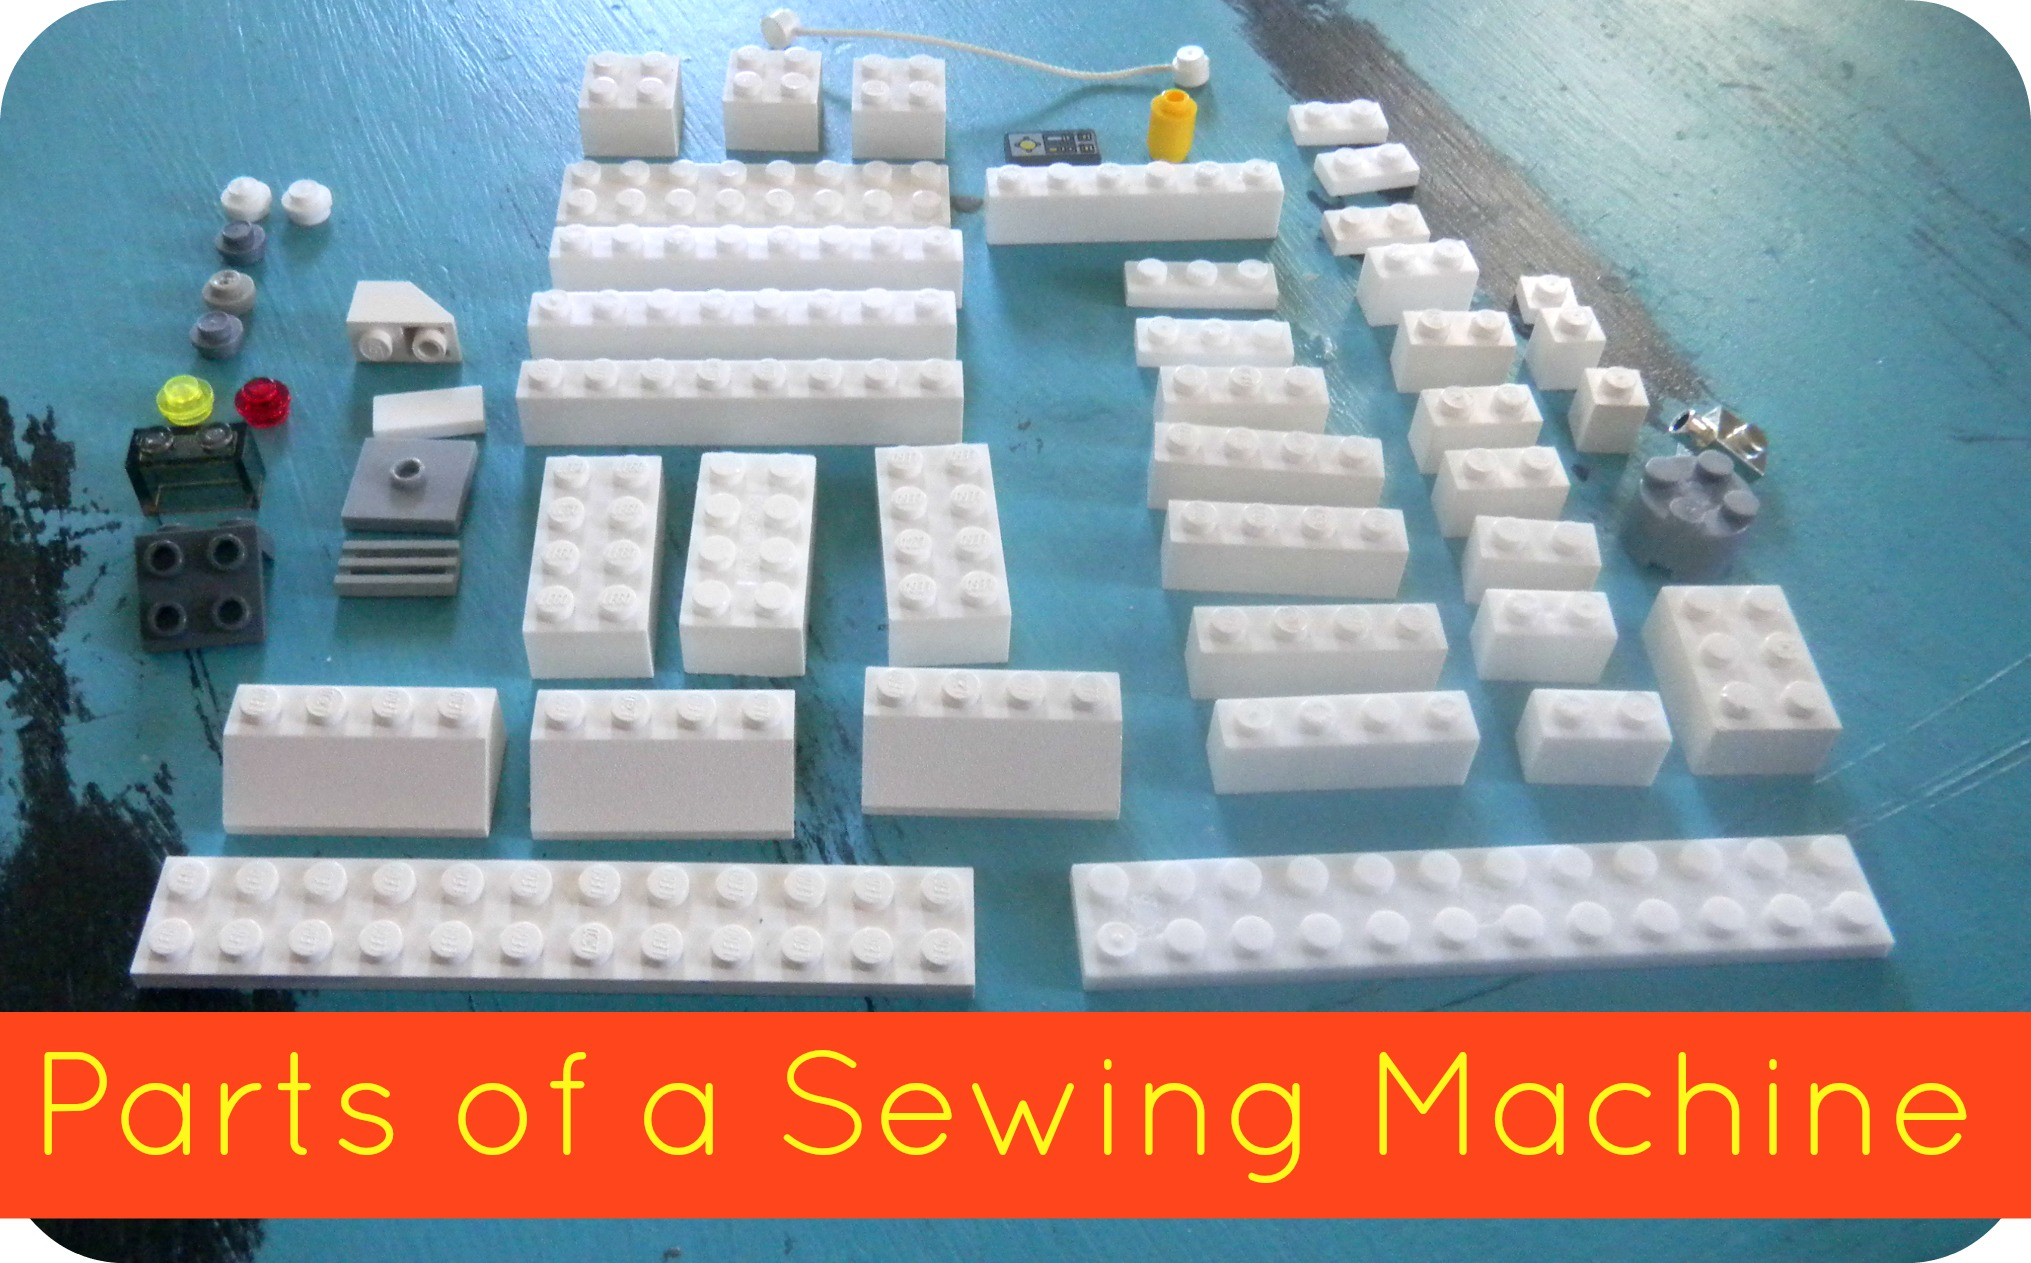 partsofasewingmachine LEGO Sewing Machine